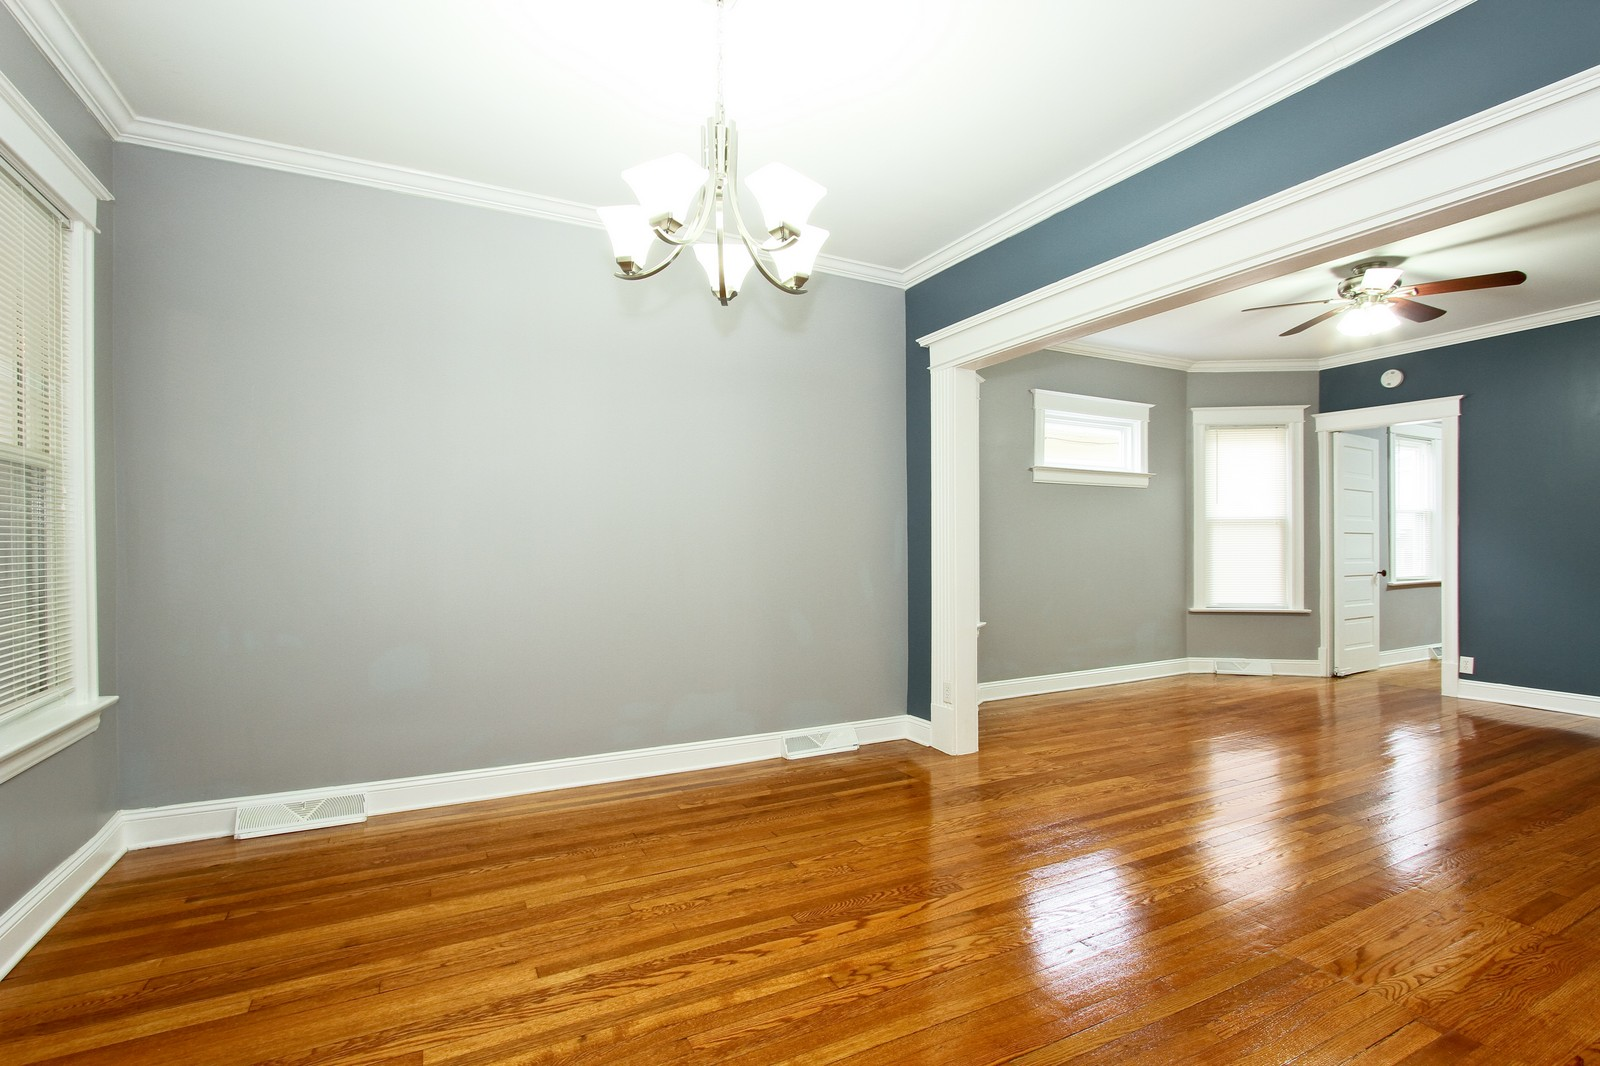 Real Estate Photography - 11838 S Wallace, Chicago, IL, 60628 - Living Room / Dining Room